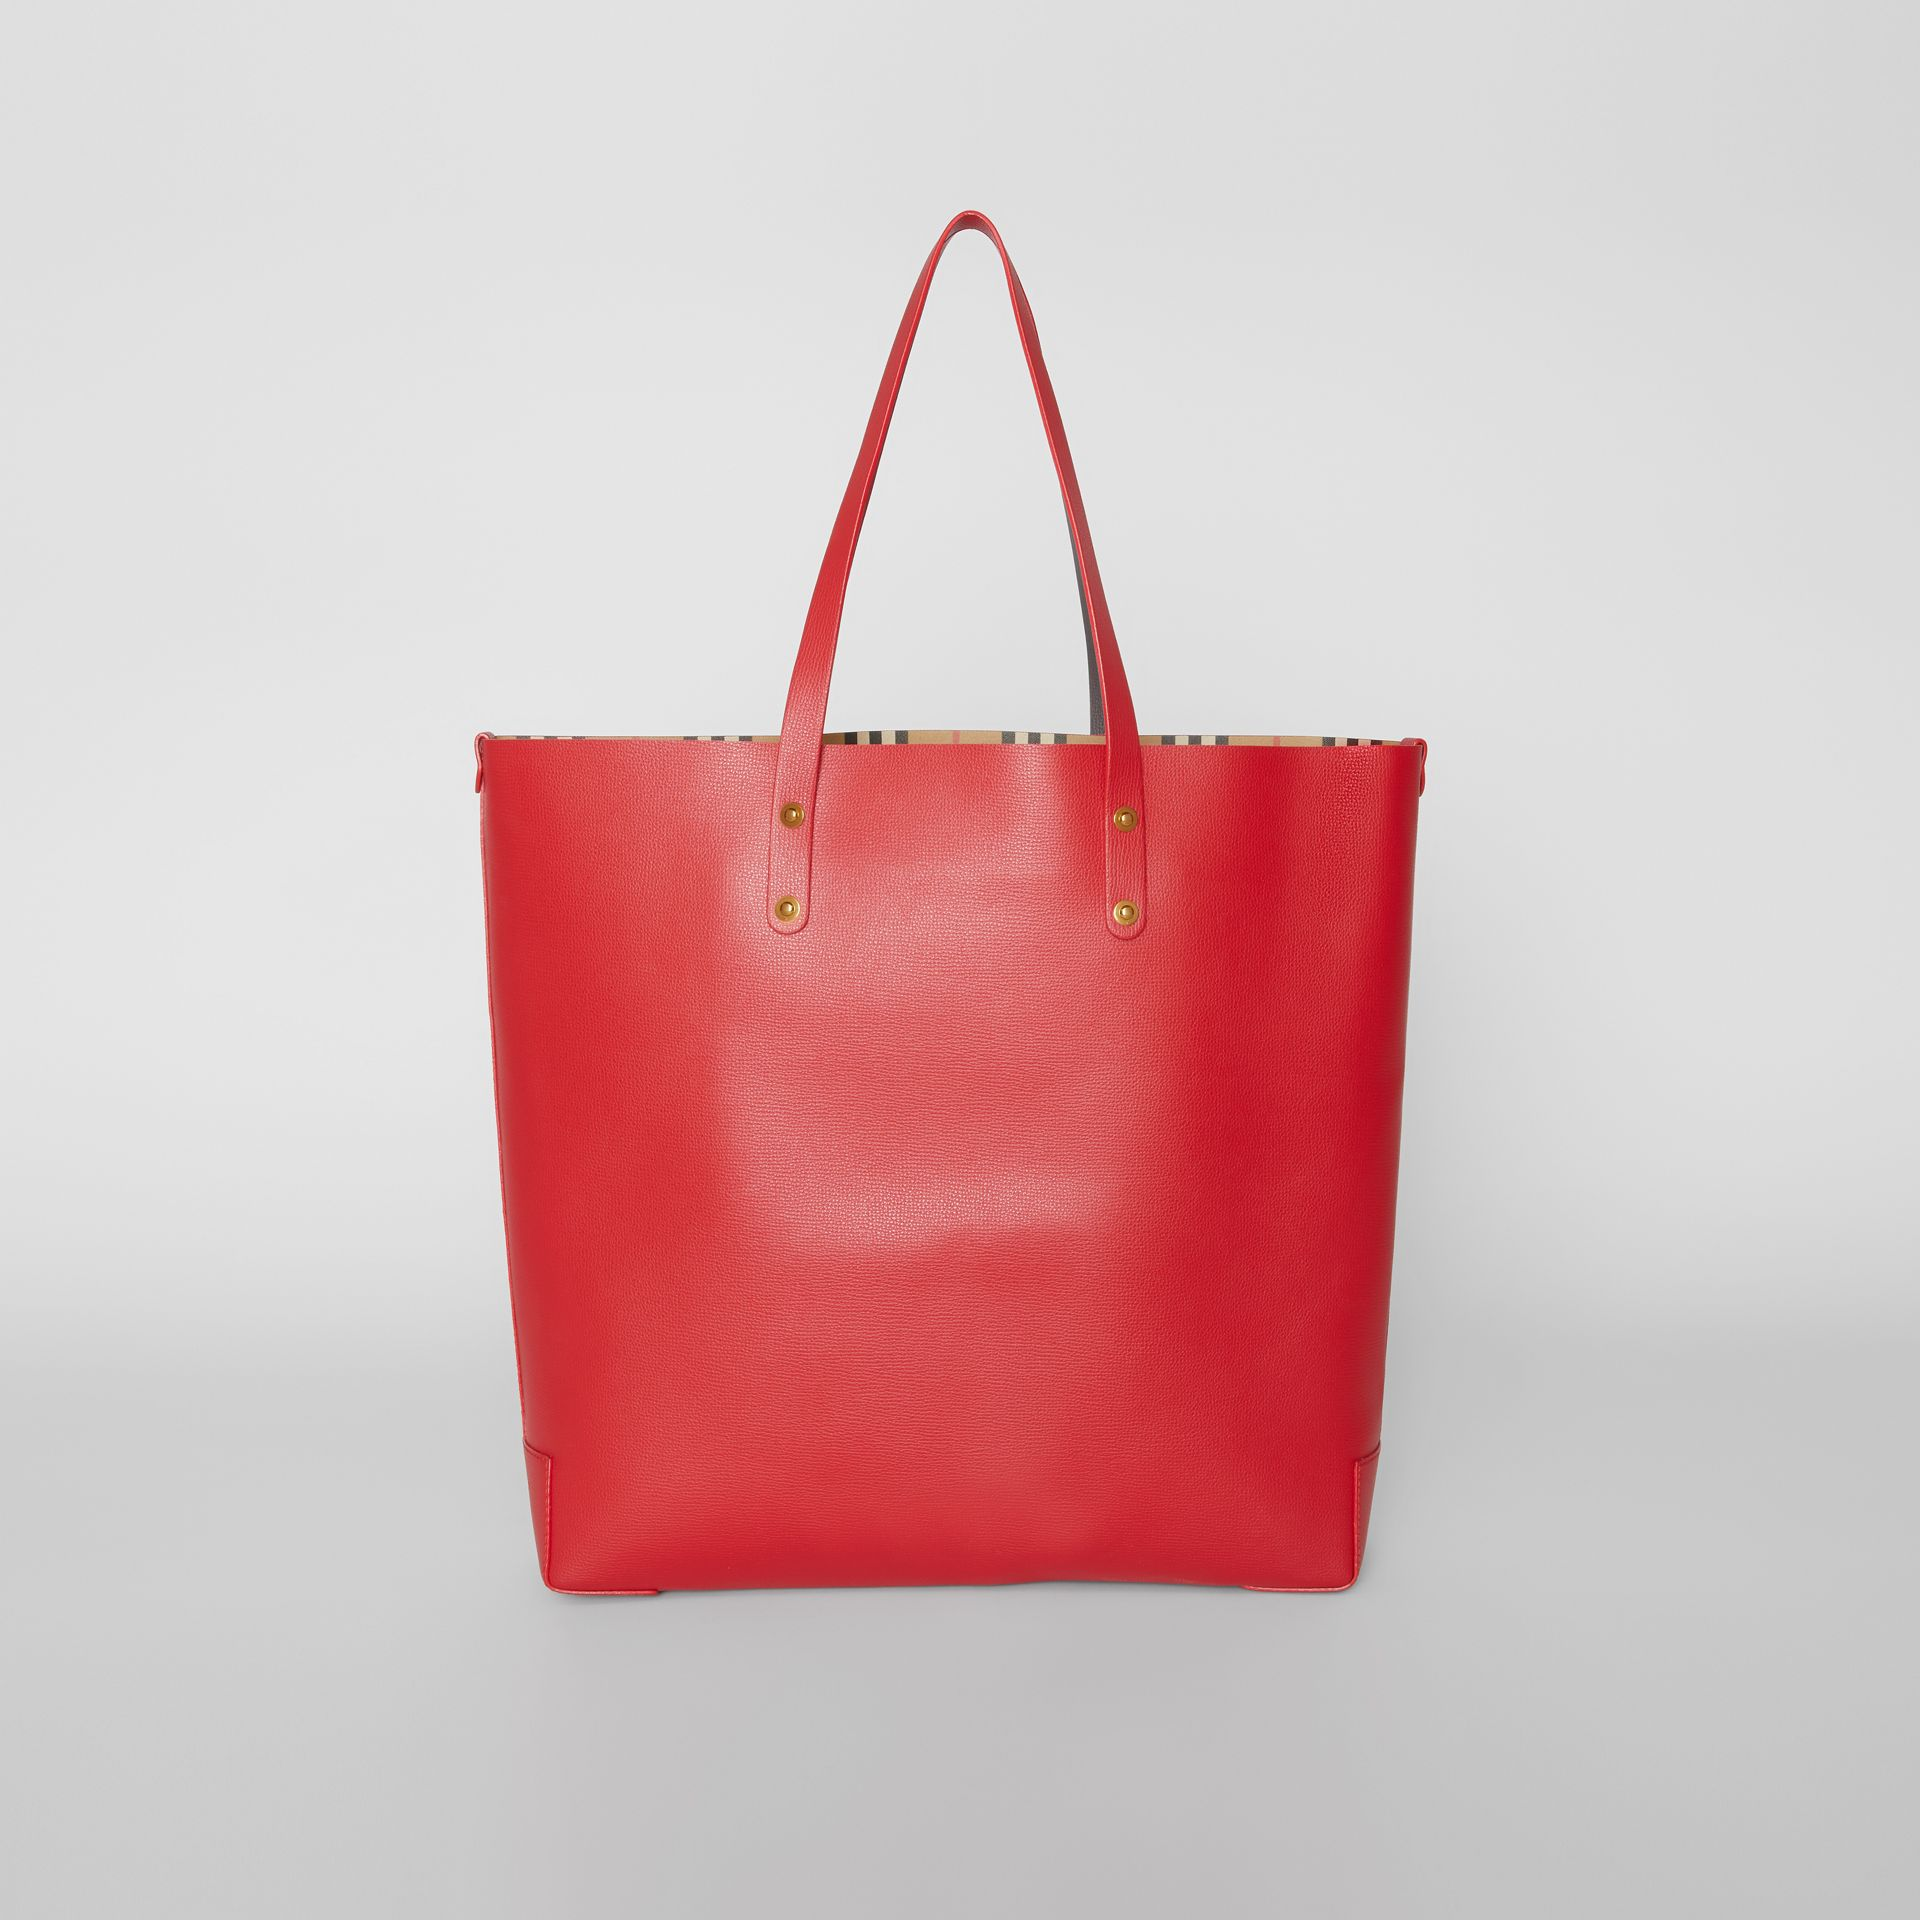 Embossed Crest Leather Tote in Rust Red - Women | Burberry - gallery image 7